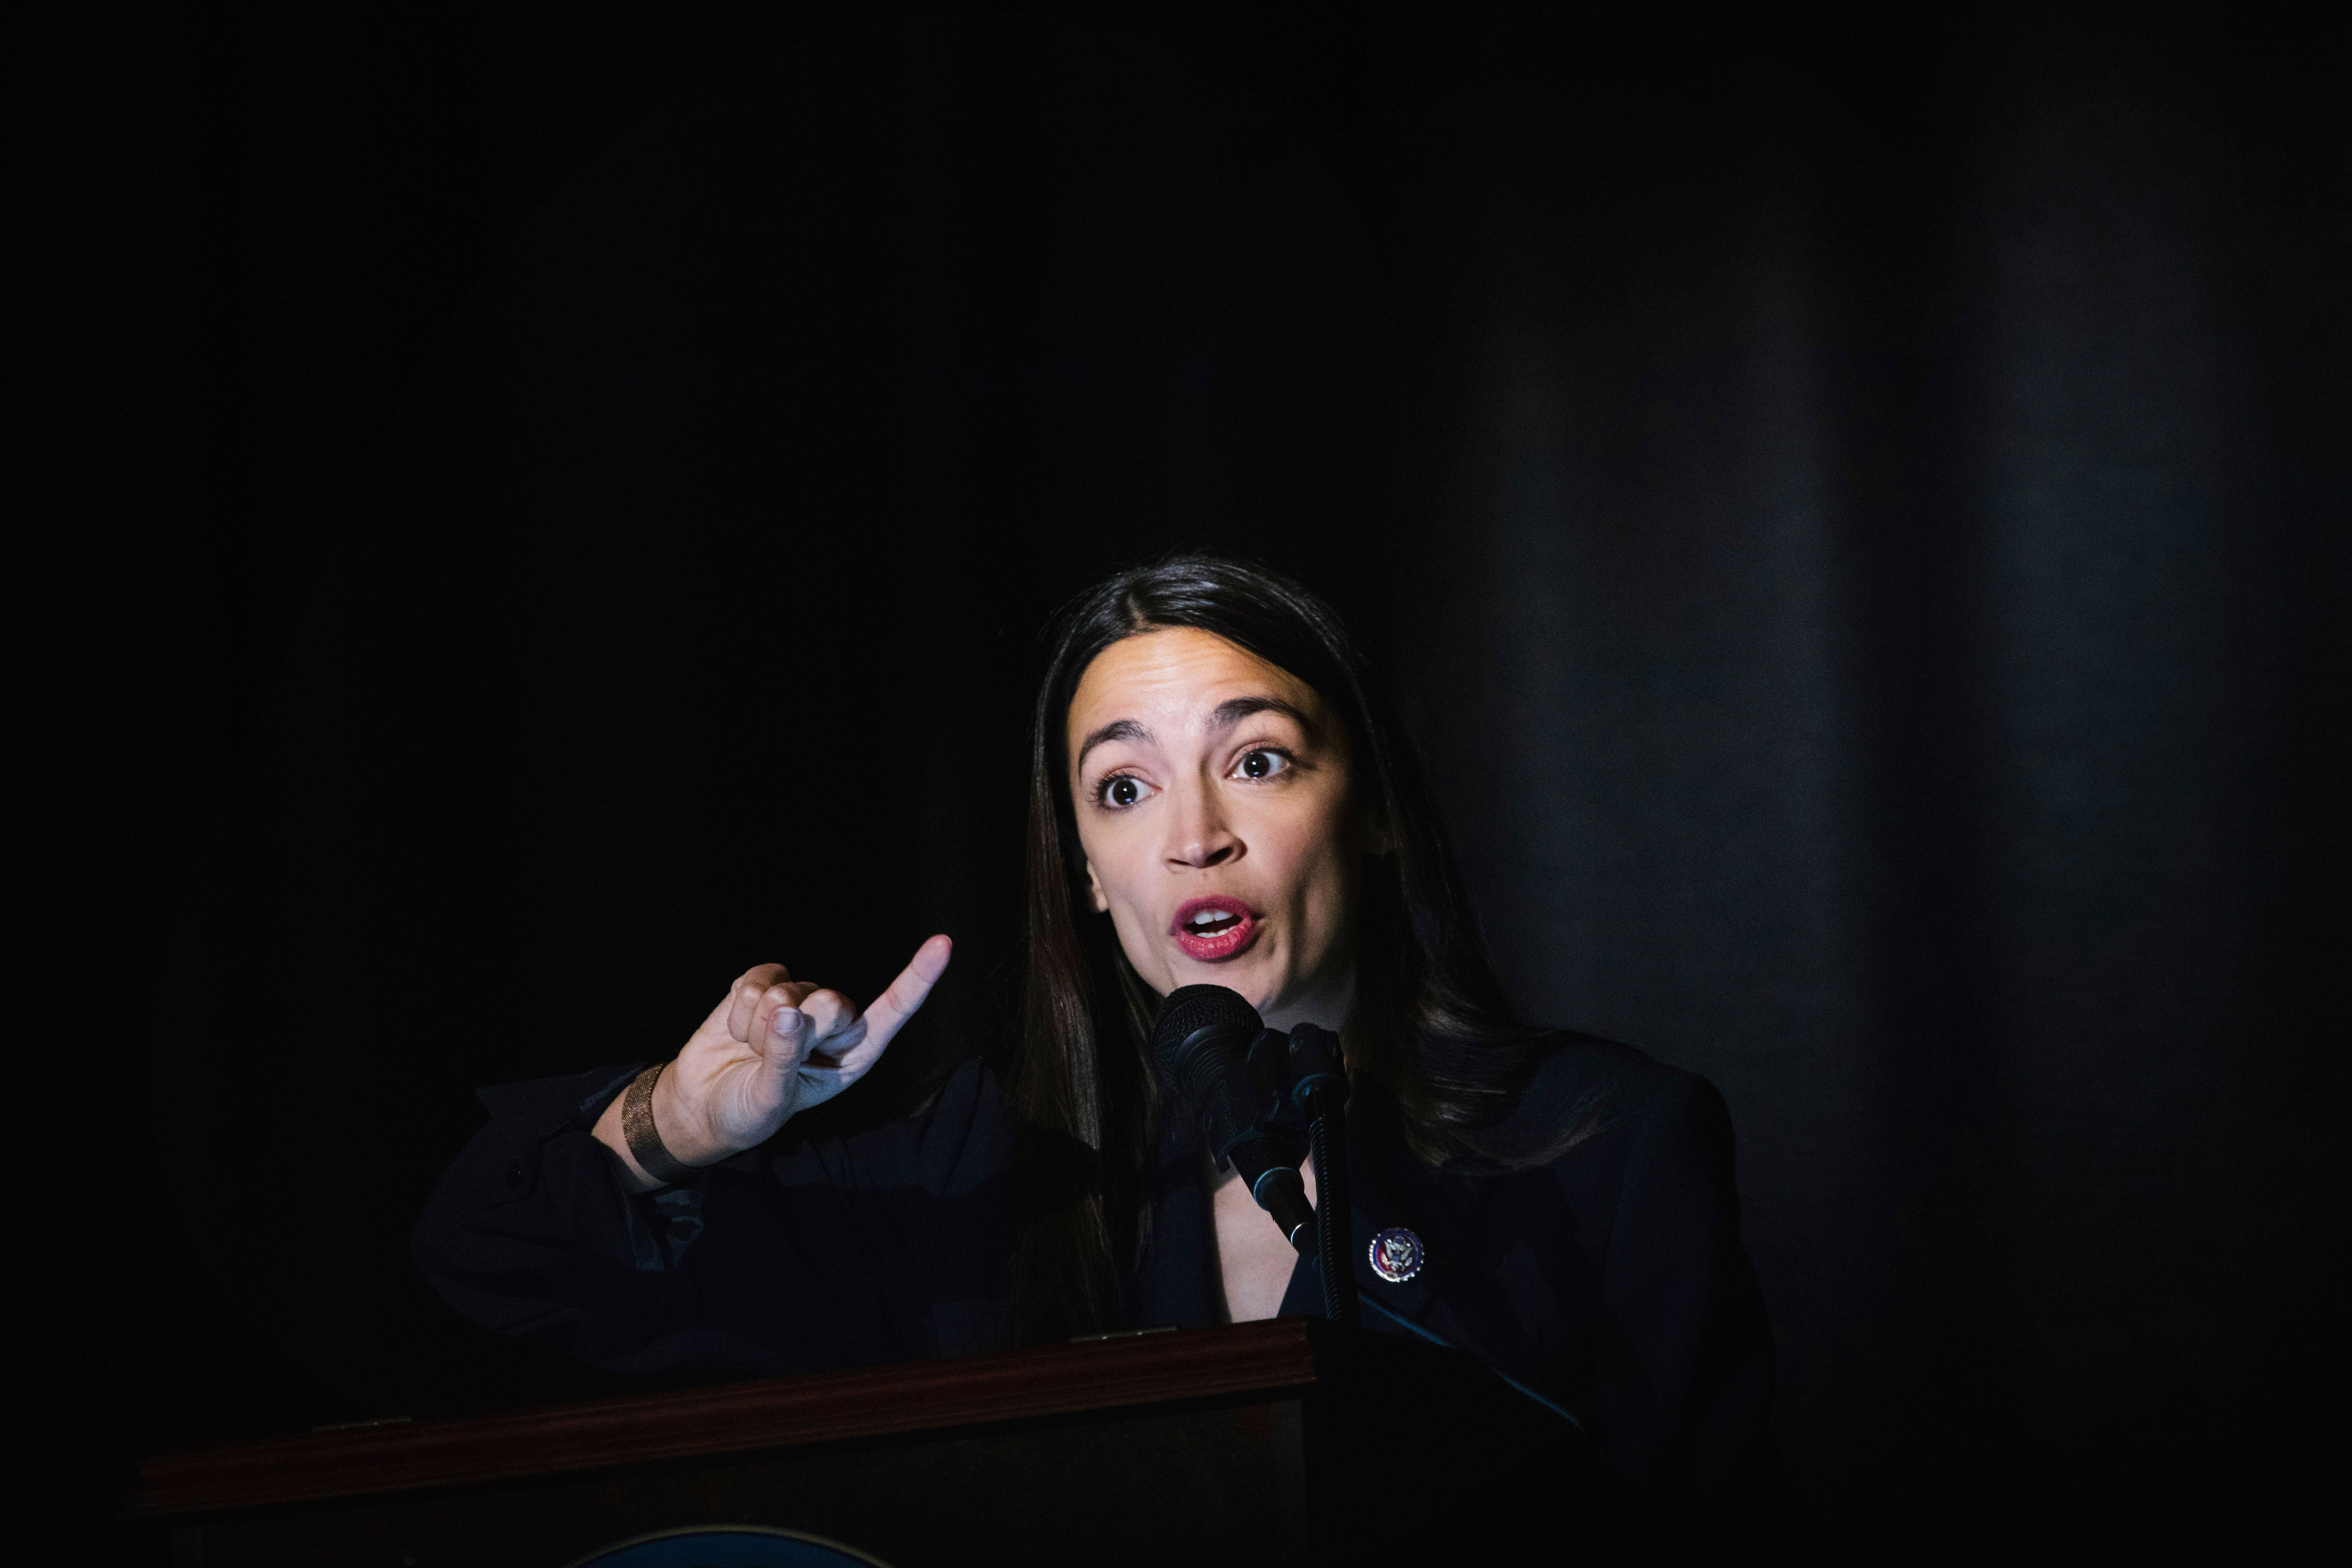 Congresswoman Ocasio-Cortez delivers her inaugural address after she was sworn in as a member of Congress Saturday, Feb. 16, 2019, in New York. (AP Photo/Kevin Hagen).